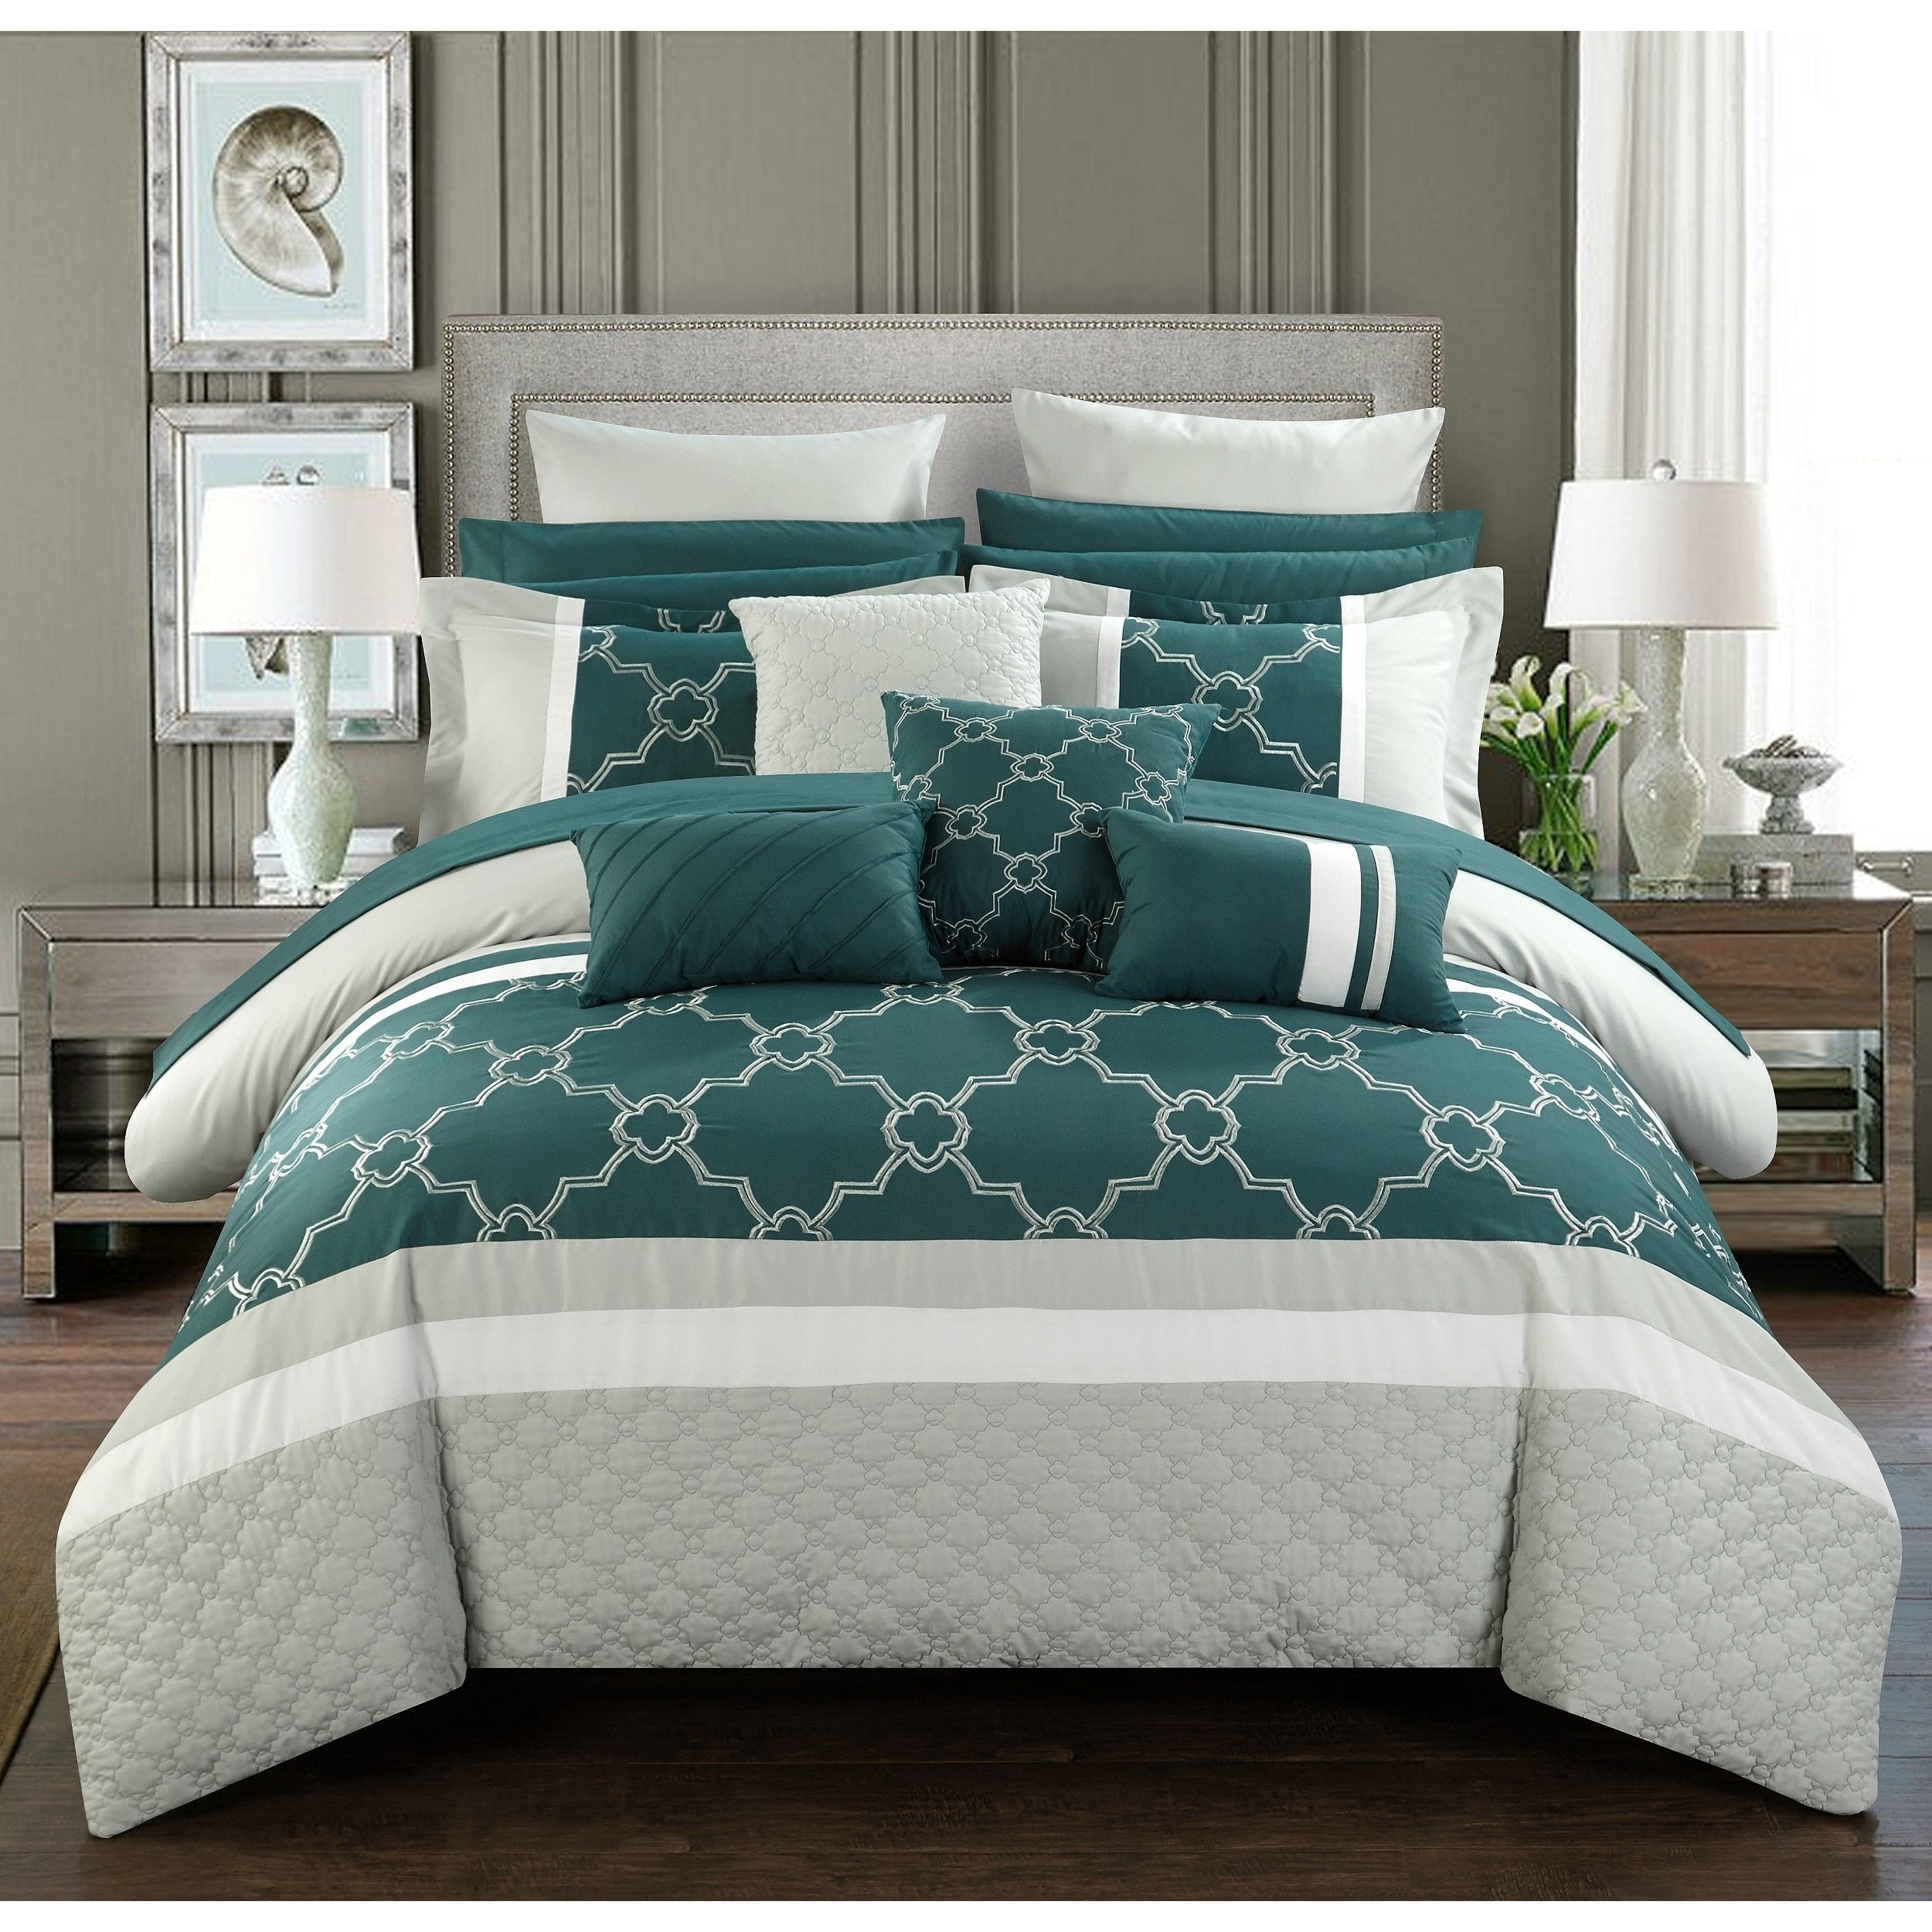 design dreaded bed boys on images of com alluring comforter set exquisite concept bedding size amazon quilts home full queen